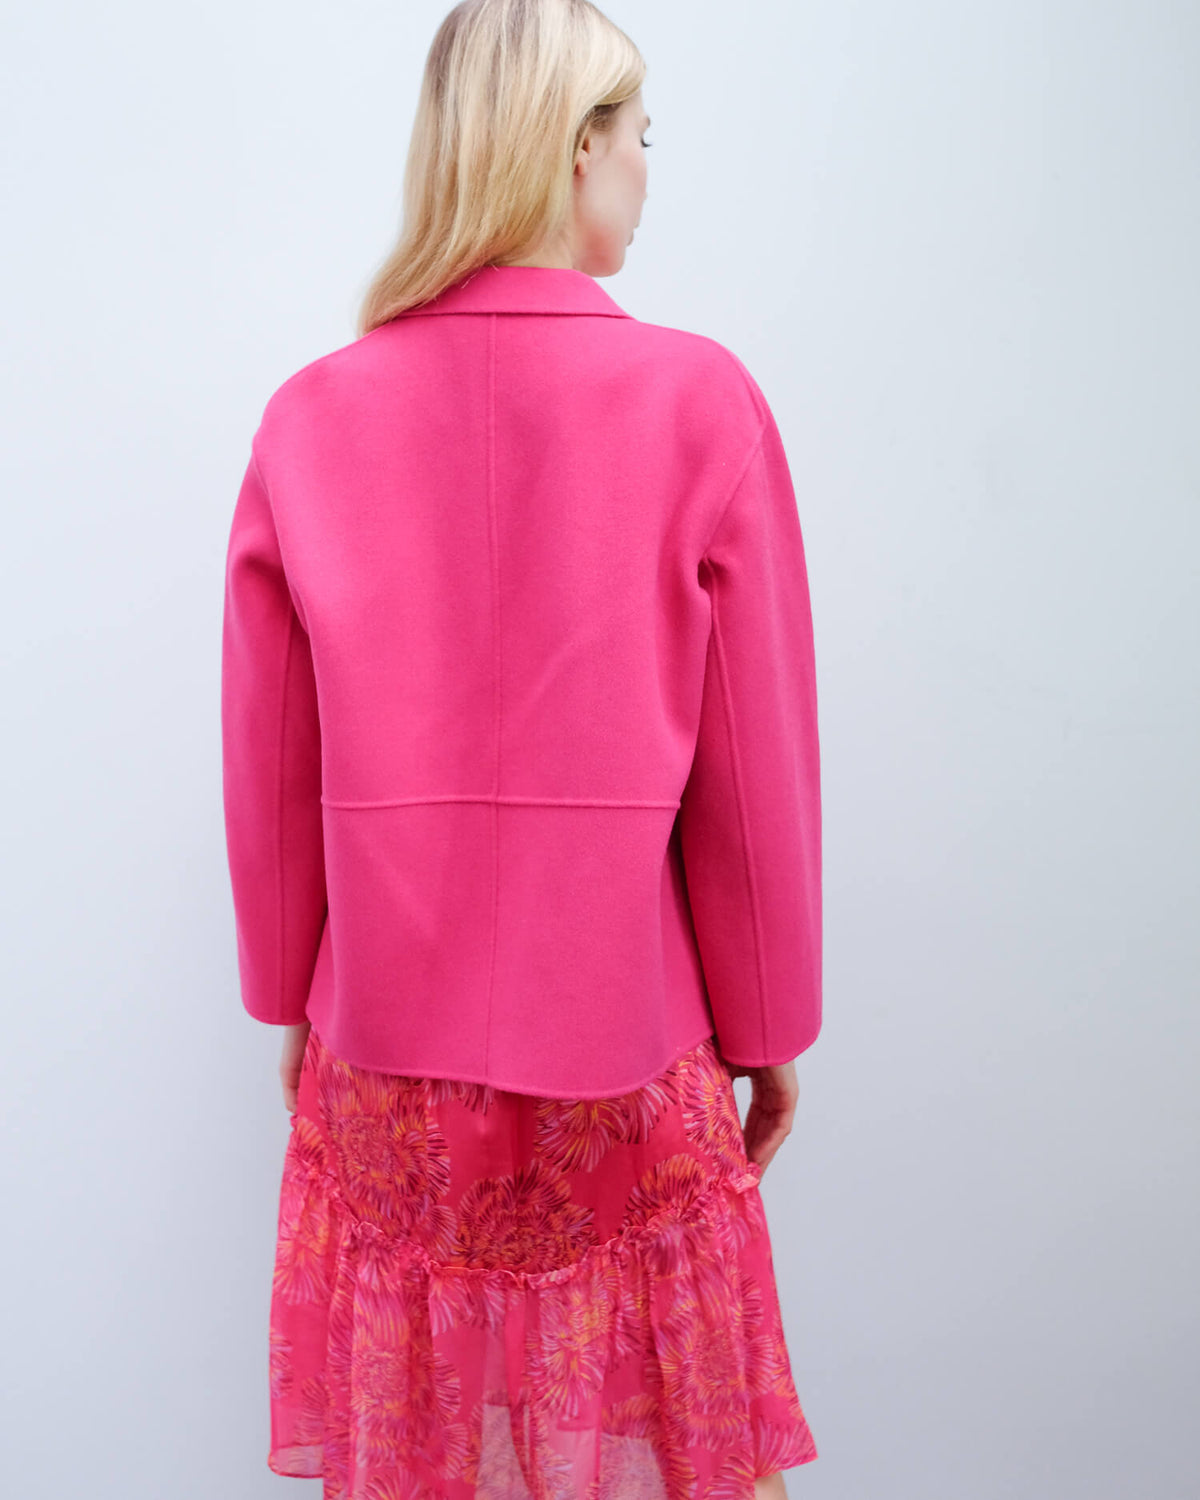 MM Ande jacket in red